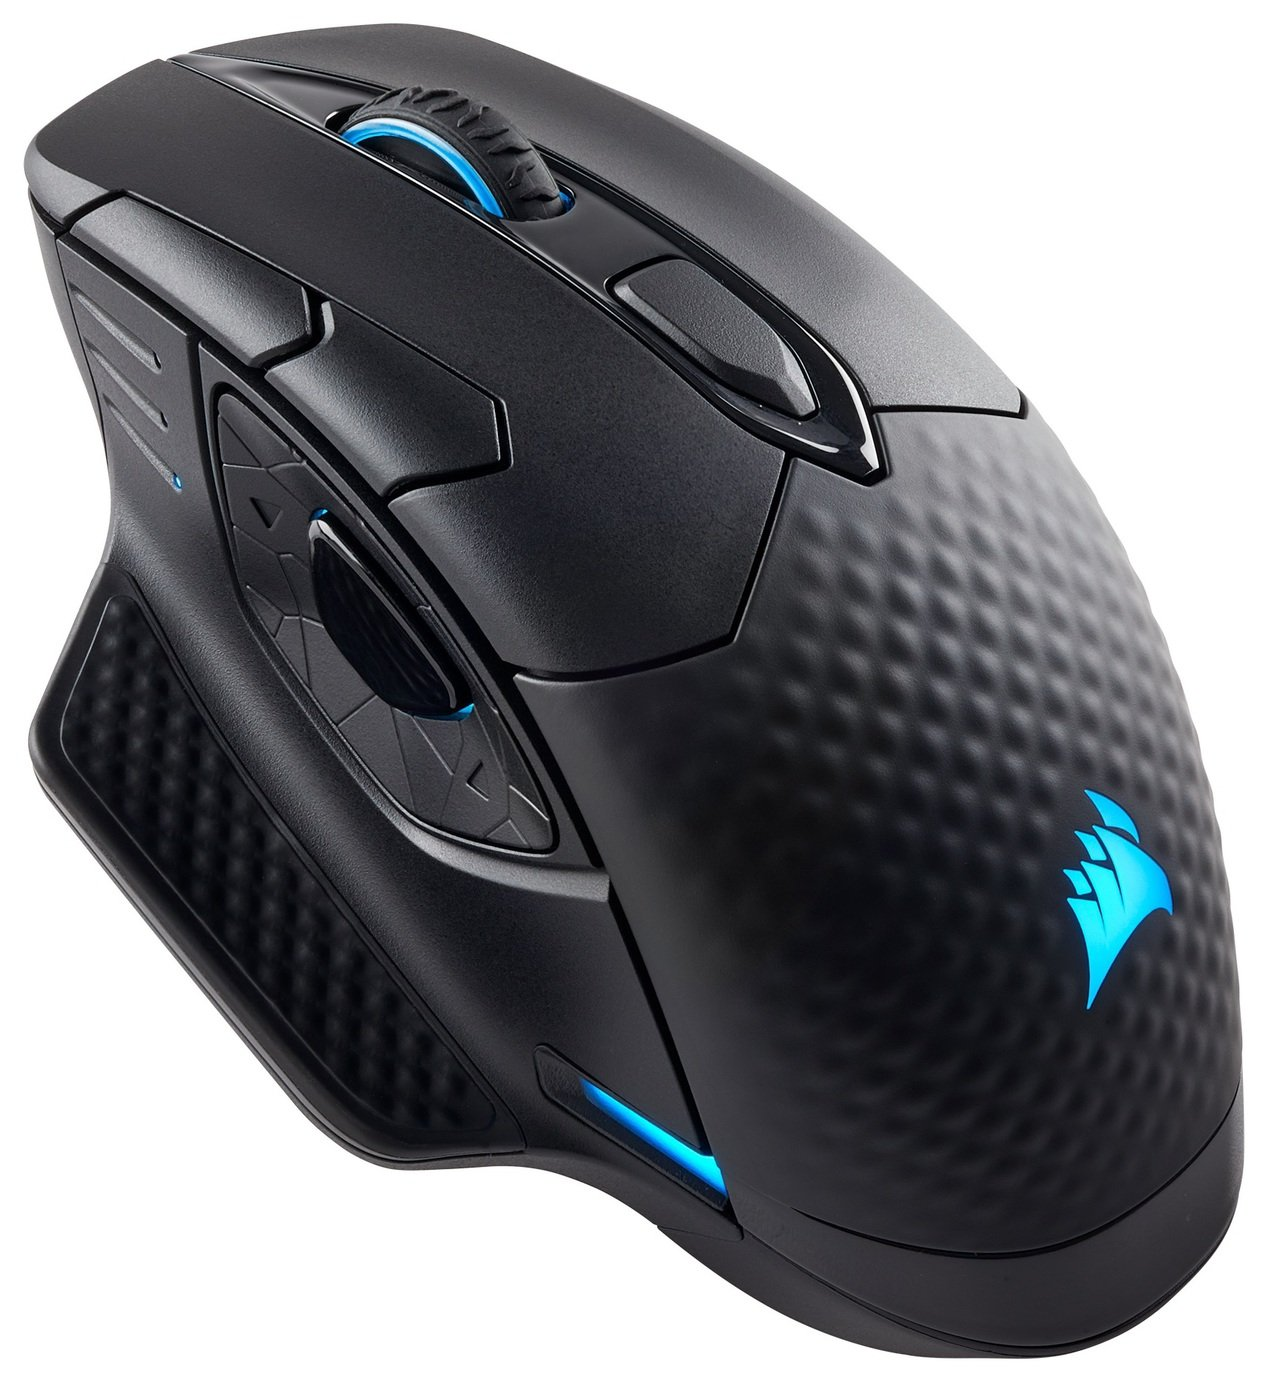 Corsair Gaming Dark Core Wireless Optical Mouse review